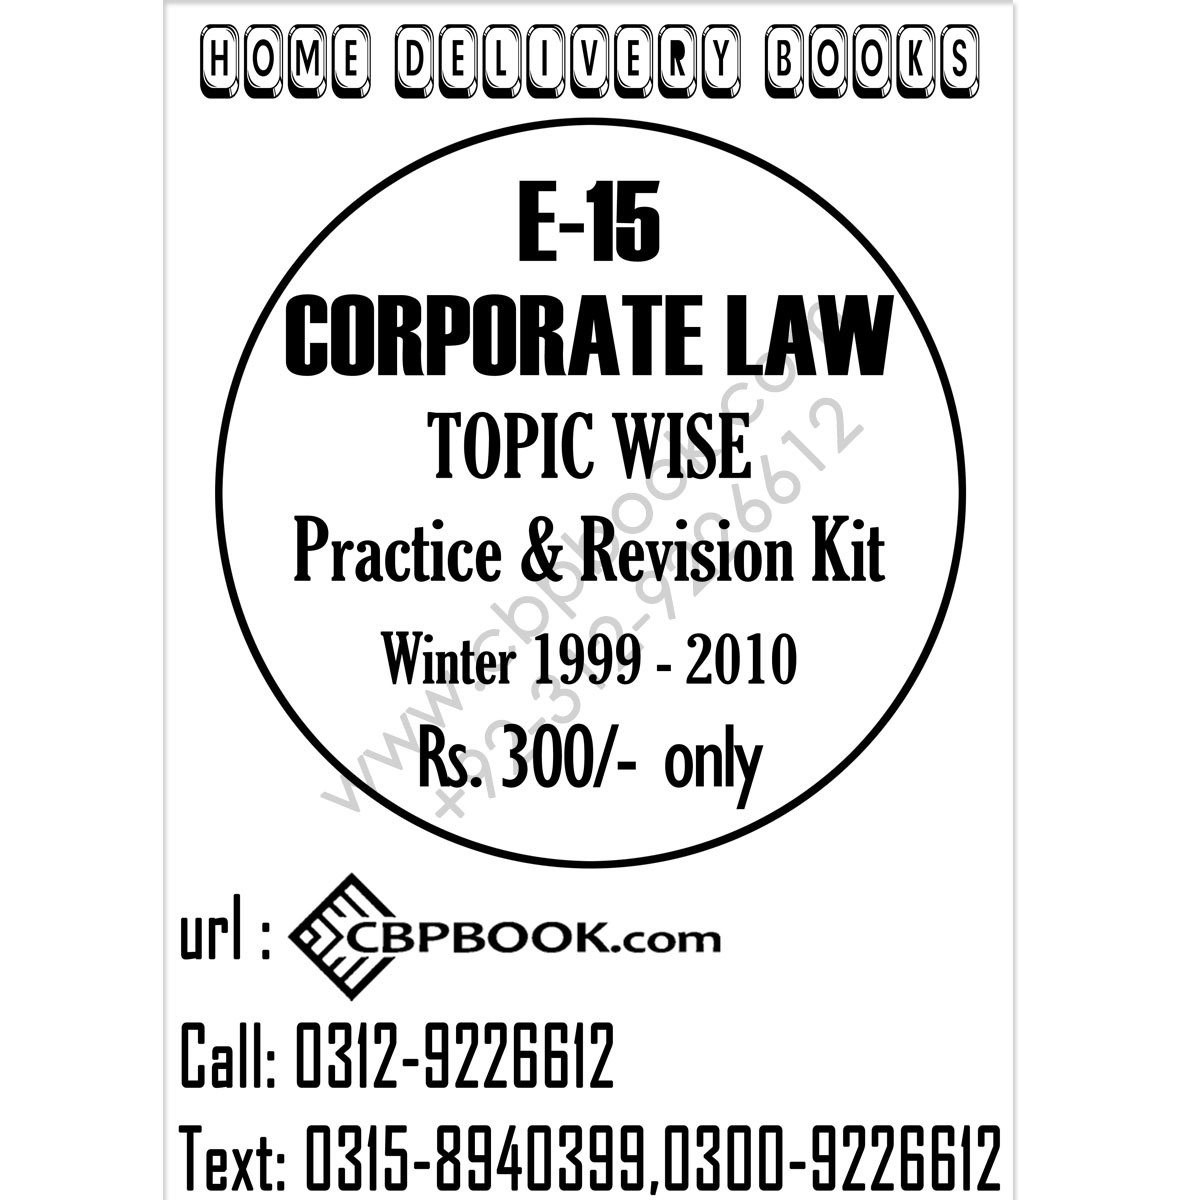 ca module e e 15 corporate law topic wise practice and revision kit